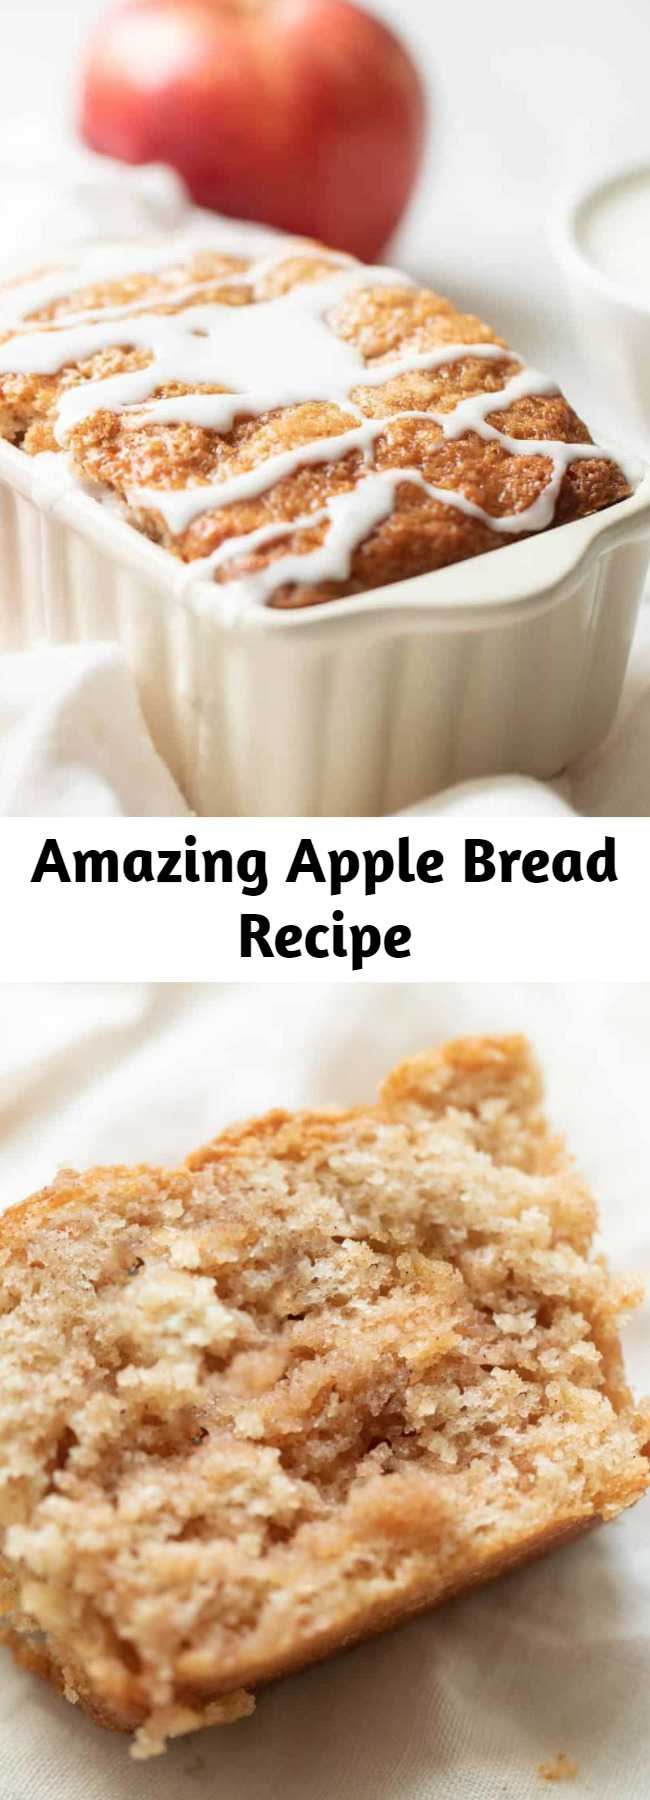 Amazing Apple Bread Recipe - This apple cinnamon bread recipe yields 6 mini loaves, making it great for both indulging and gifting! It's a foolproof no yeast quickbread that takes just 10 minutes from mixer to oven requires only staple ingredients. How is that for easy fall flavor? #applebread #sweetbread #apple #bread #applecinnamonbread #cinnamon #fall #fallrecipe